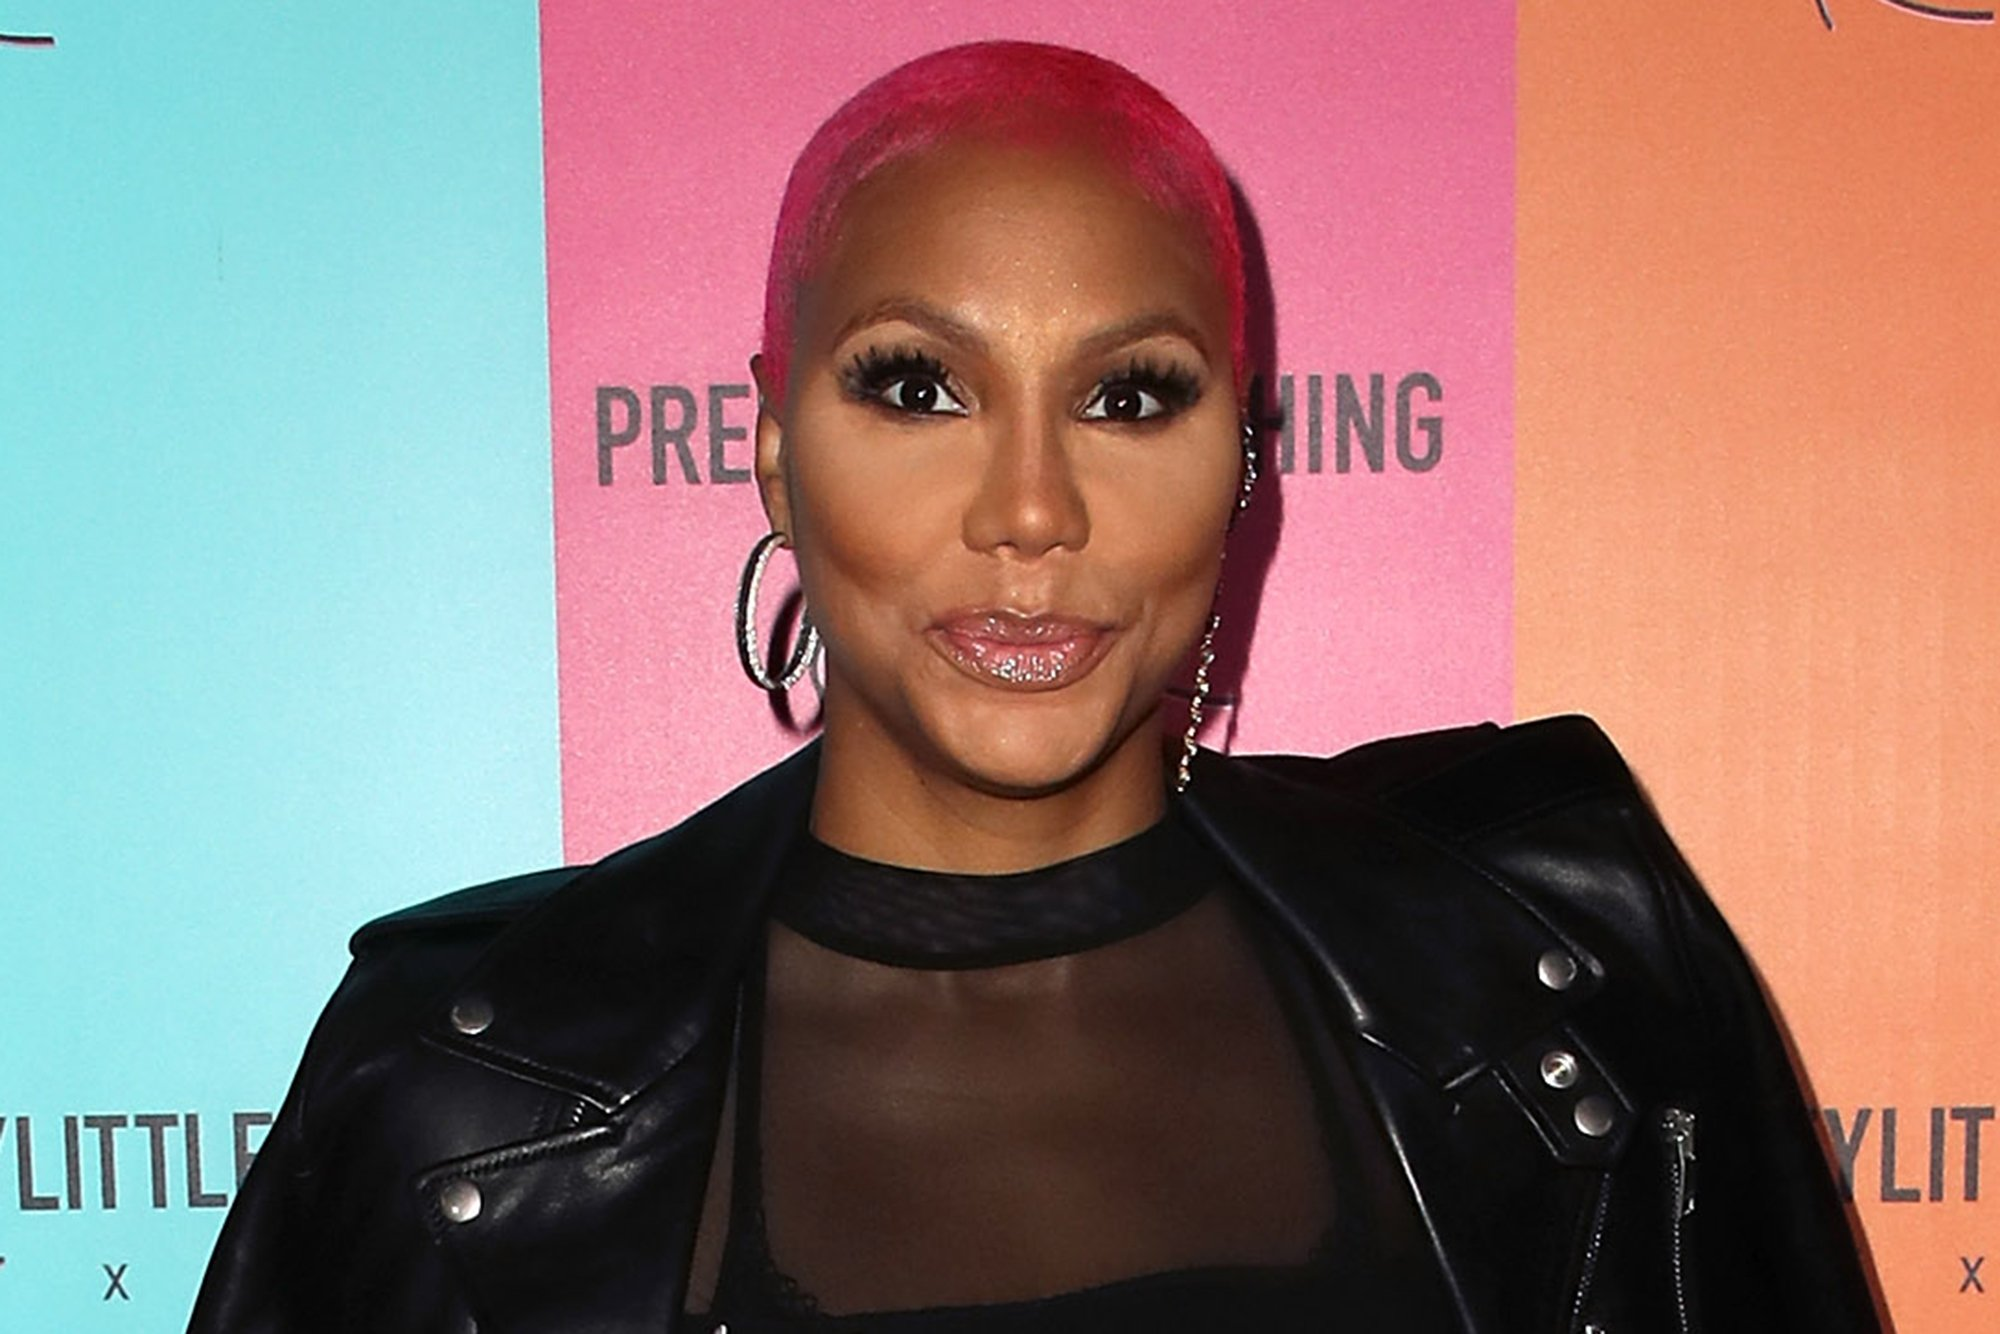 Tamar Braxton Talks About Money, Power And Respect In Her New Podcast Episode